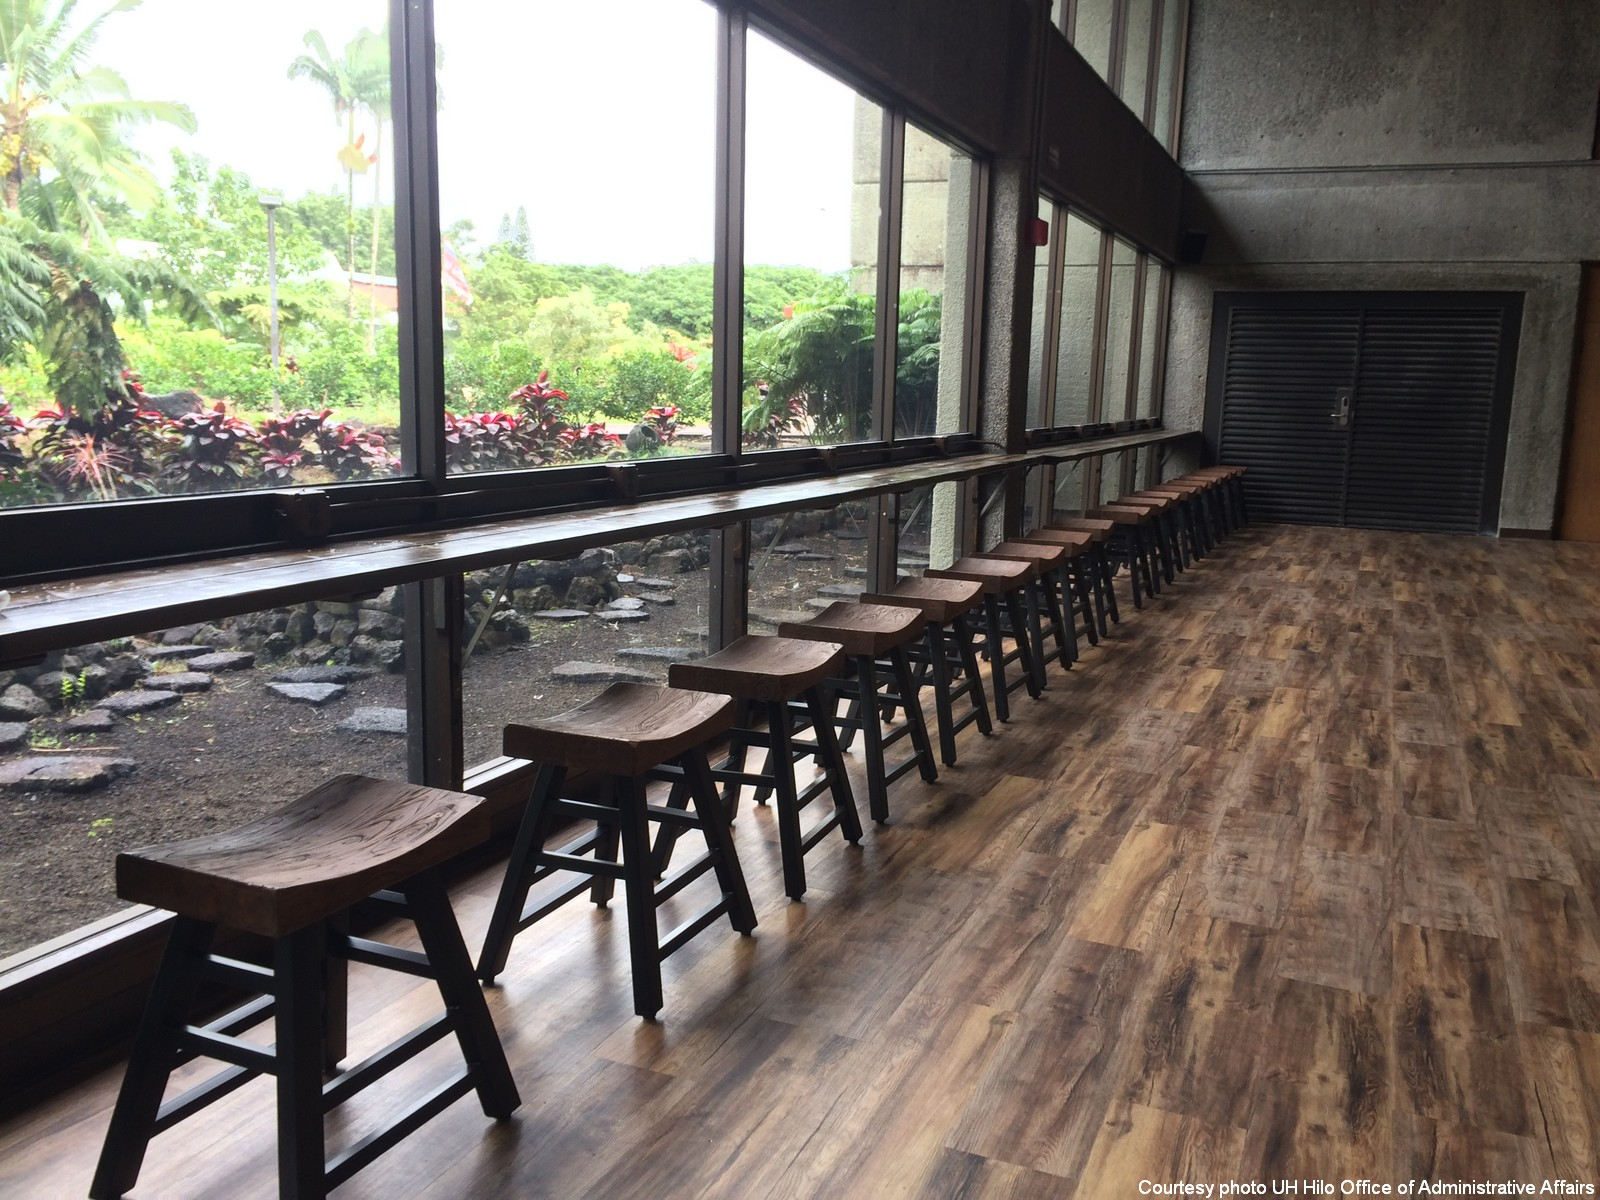 Trend-on: UH Hilo's main dining room is transforming into